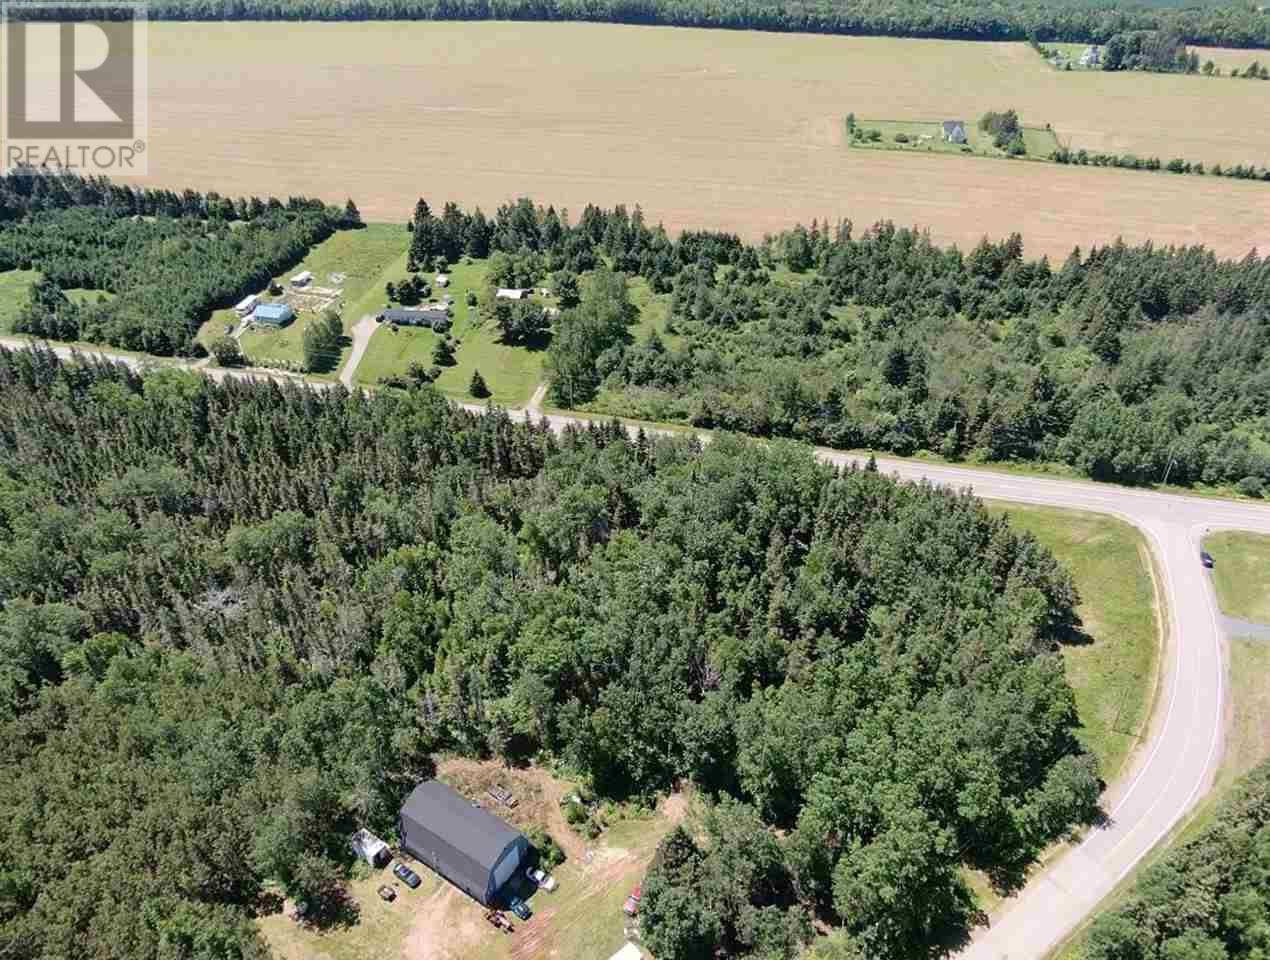 Residential property for sale at 26 Greys Rd Belle River Prince Edward Island - MLS: 201916406